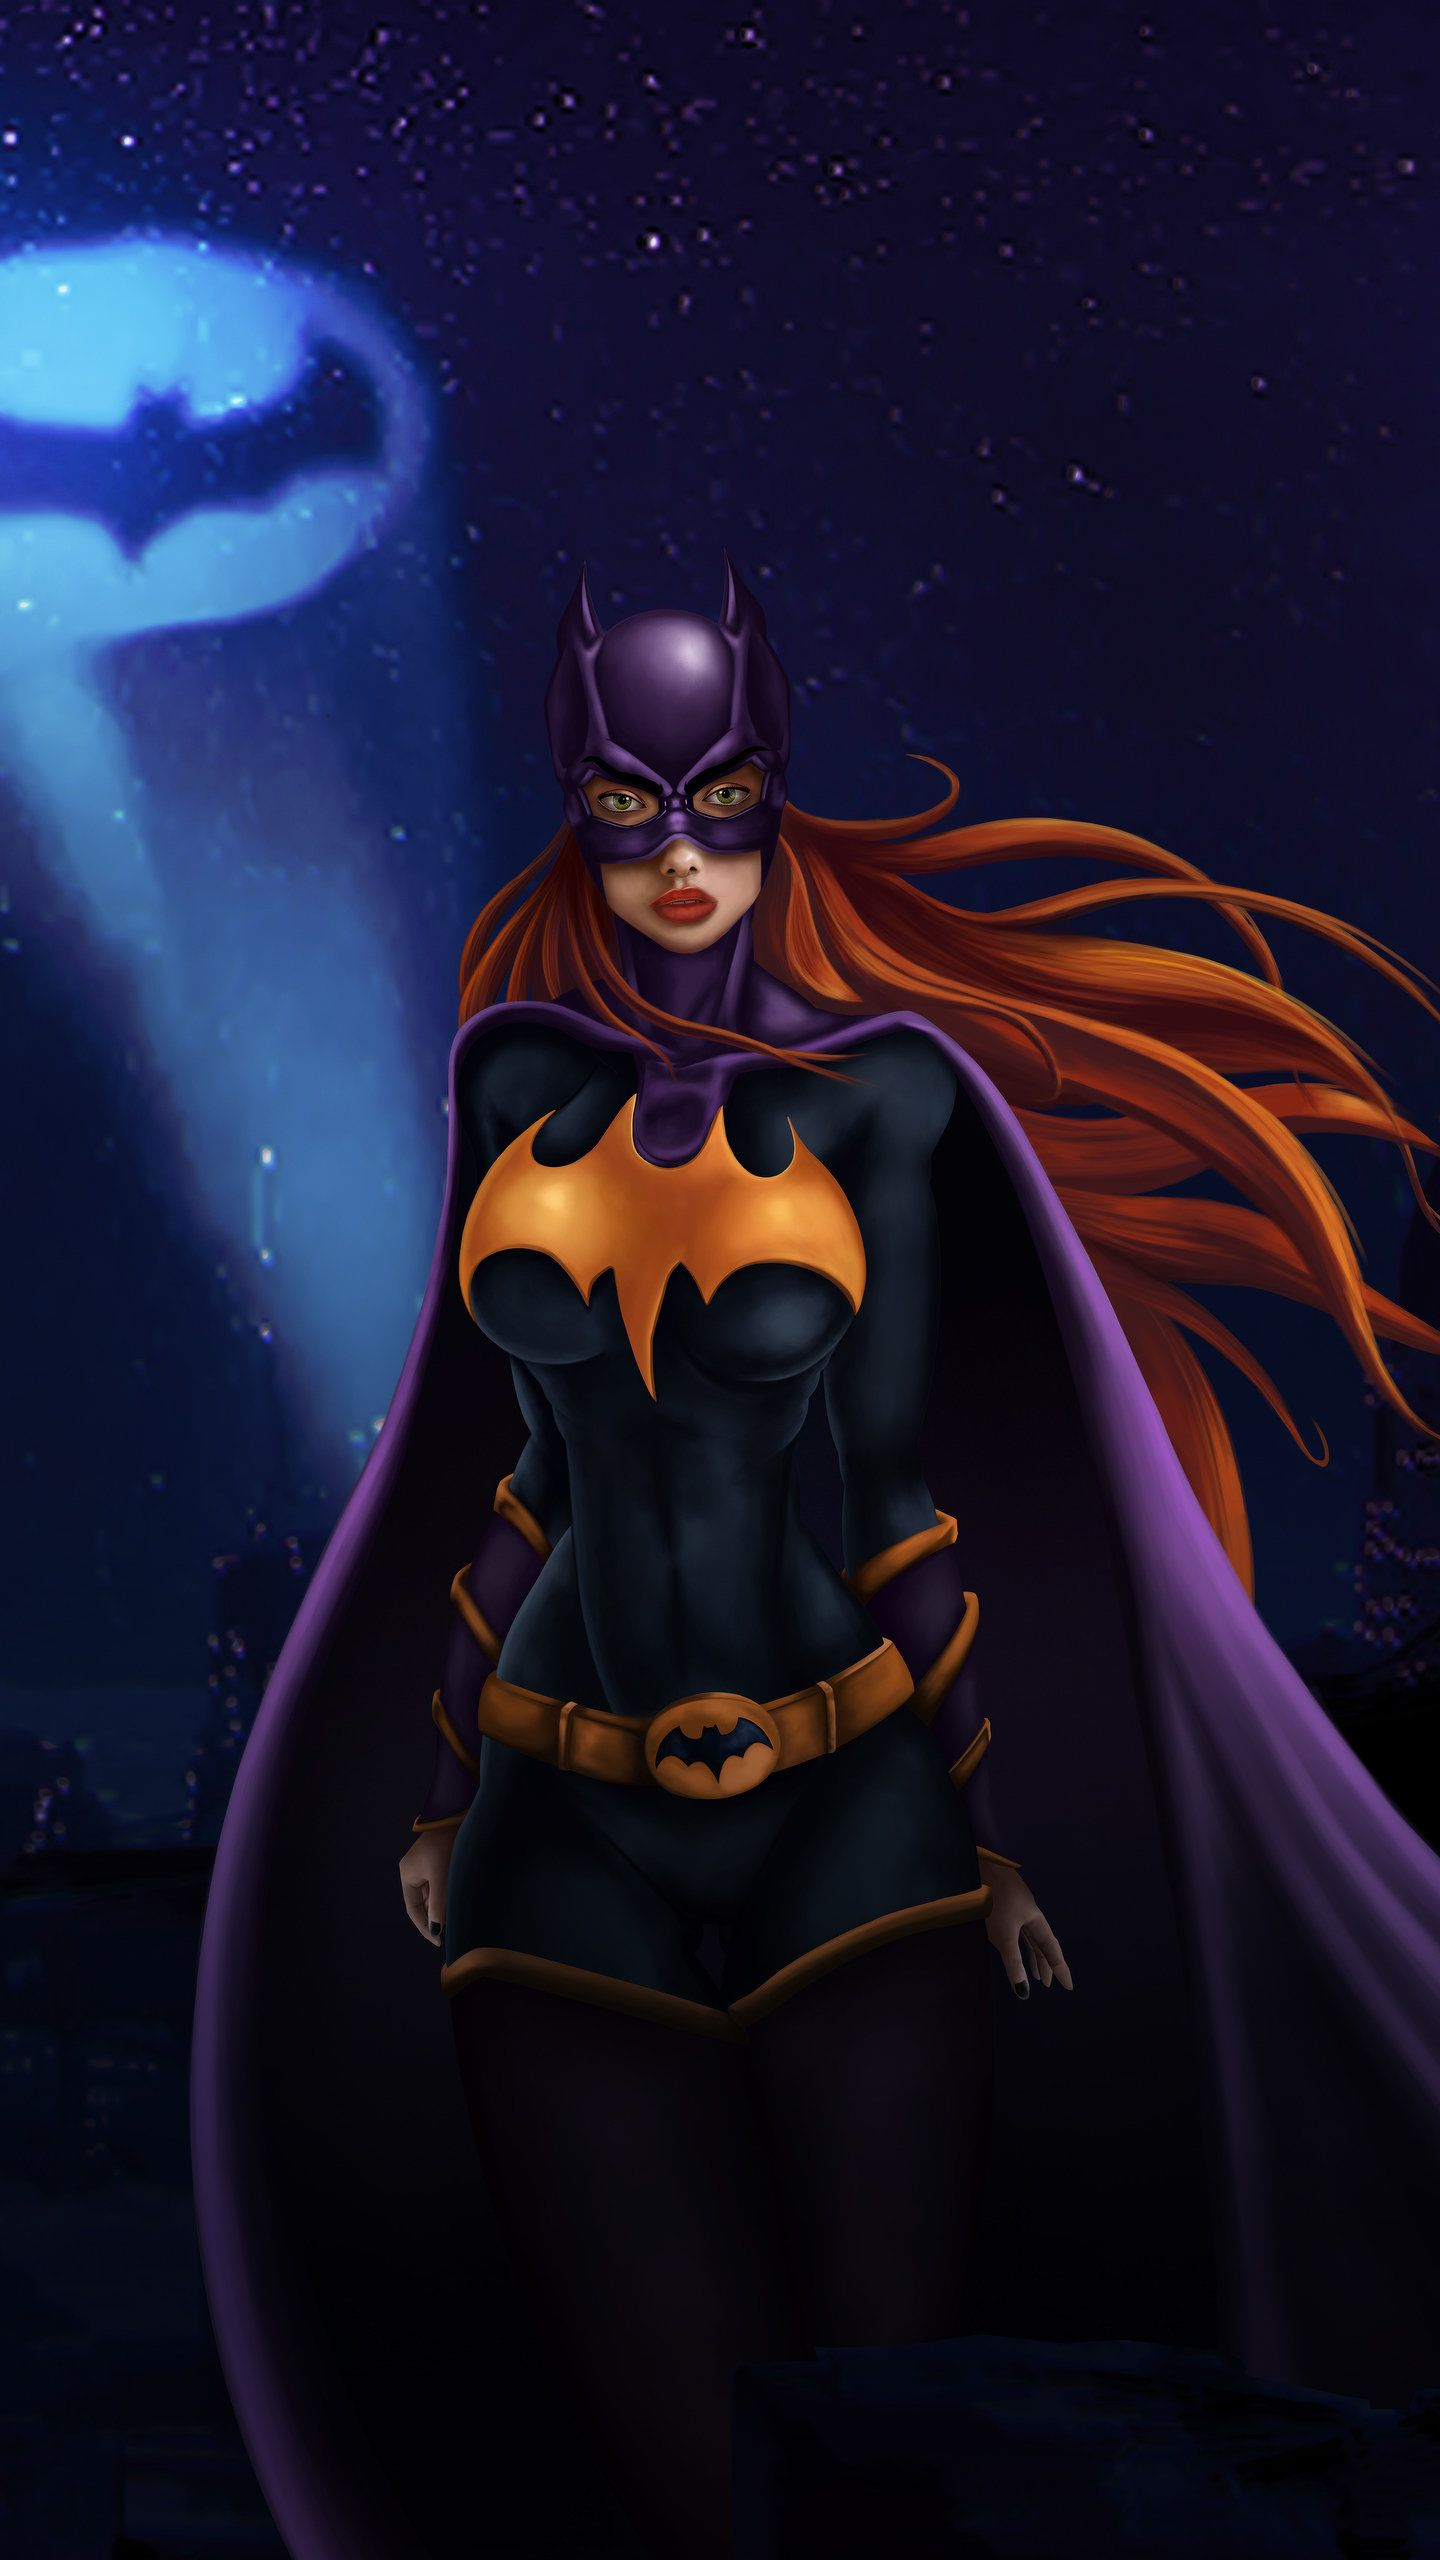 Batwoman 4k Artwork Hd Superheroes Wallpapers Photos And Pictures Batwoman Superhero Artwork